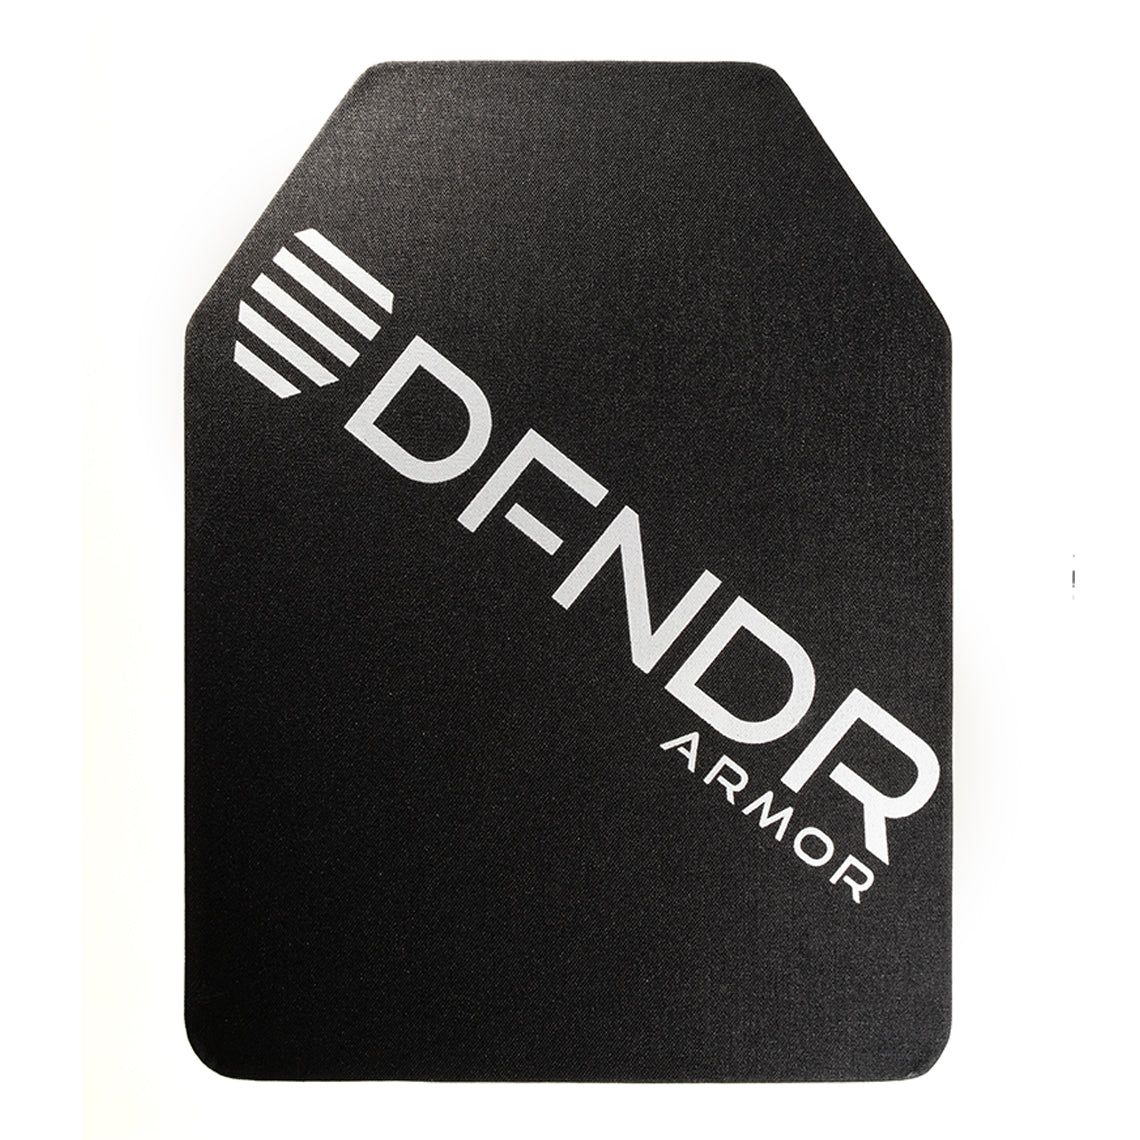 DFNDR Armor LEVEL III RIFLE RATED BODY ARMOR